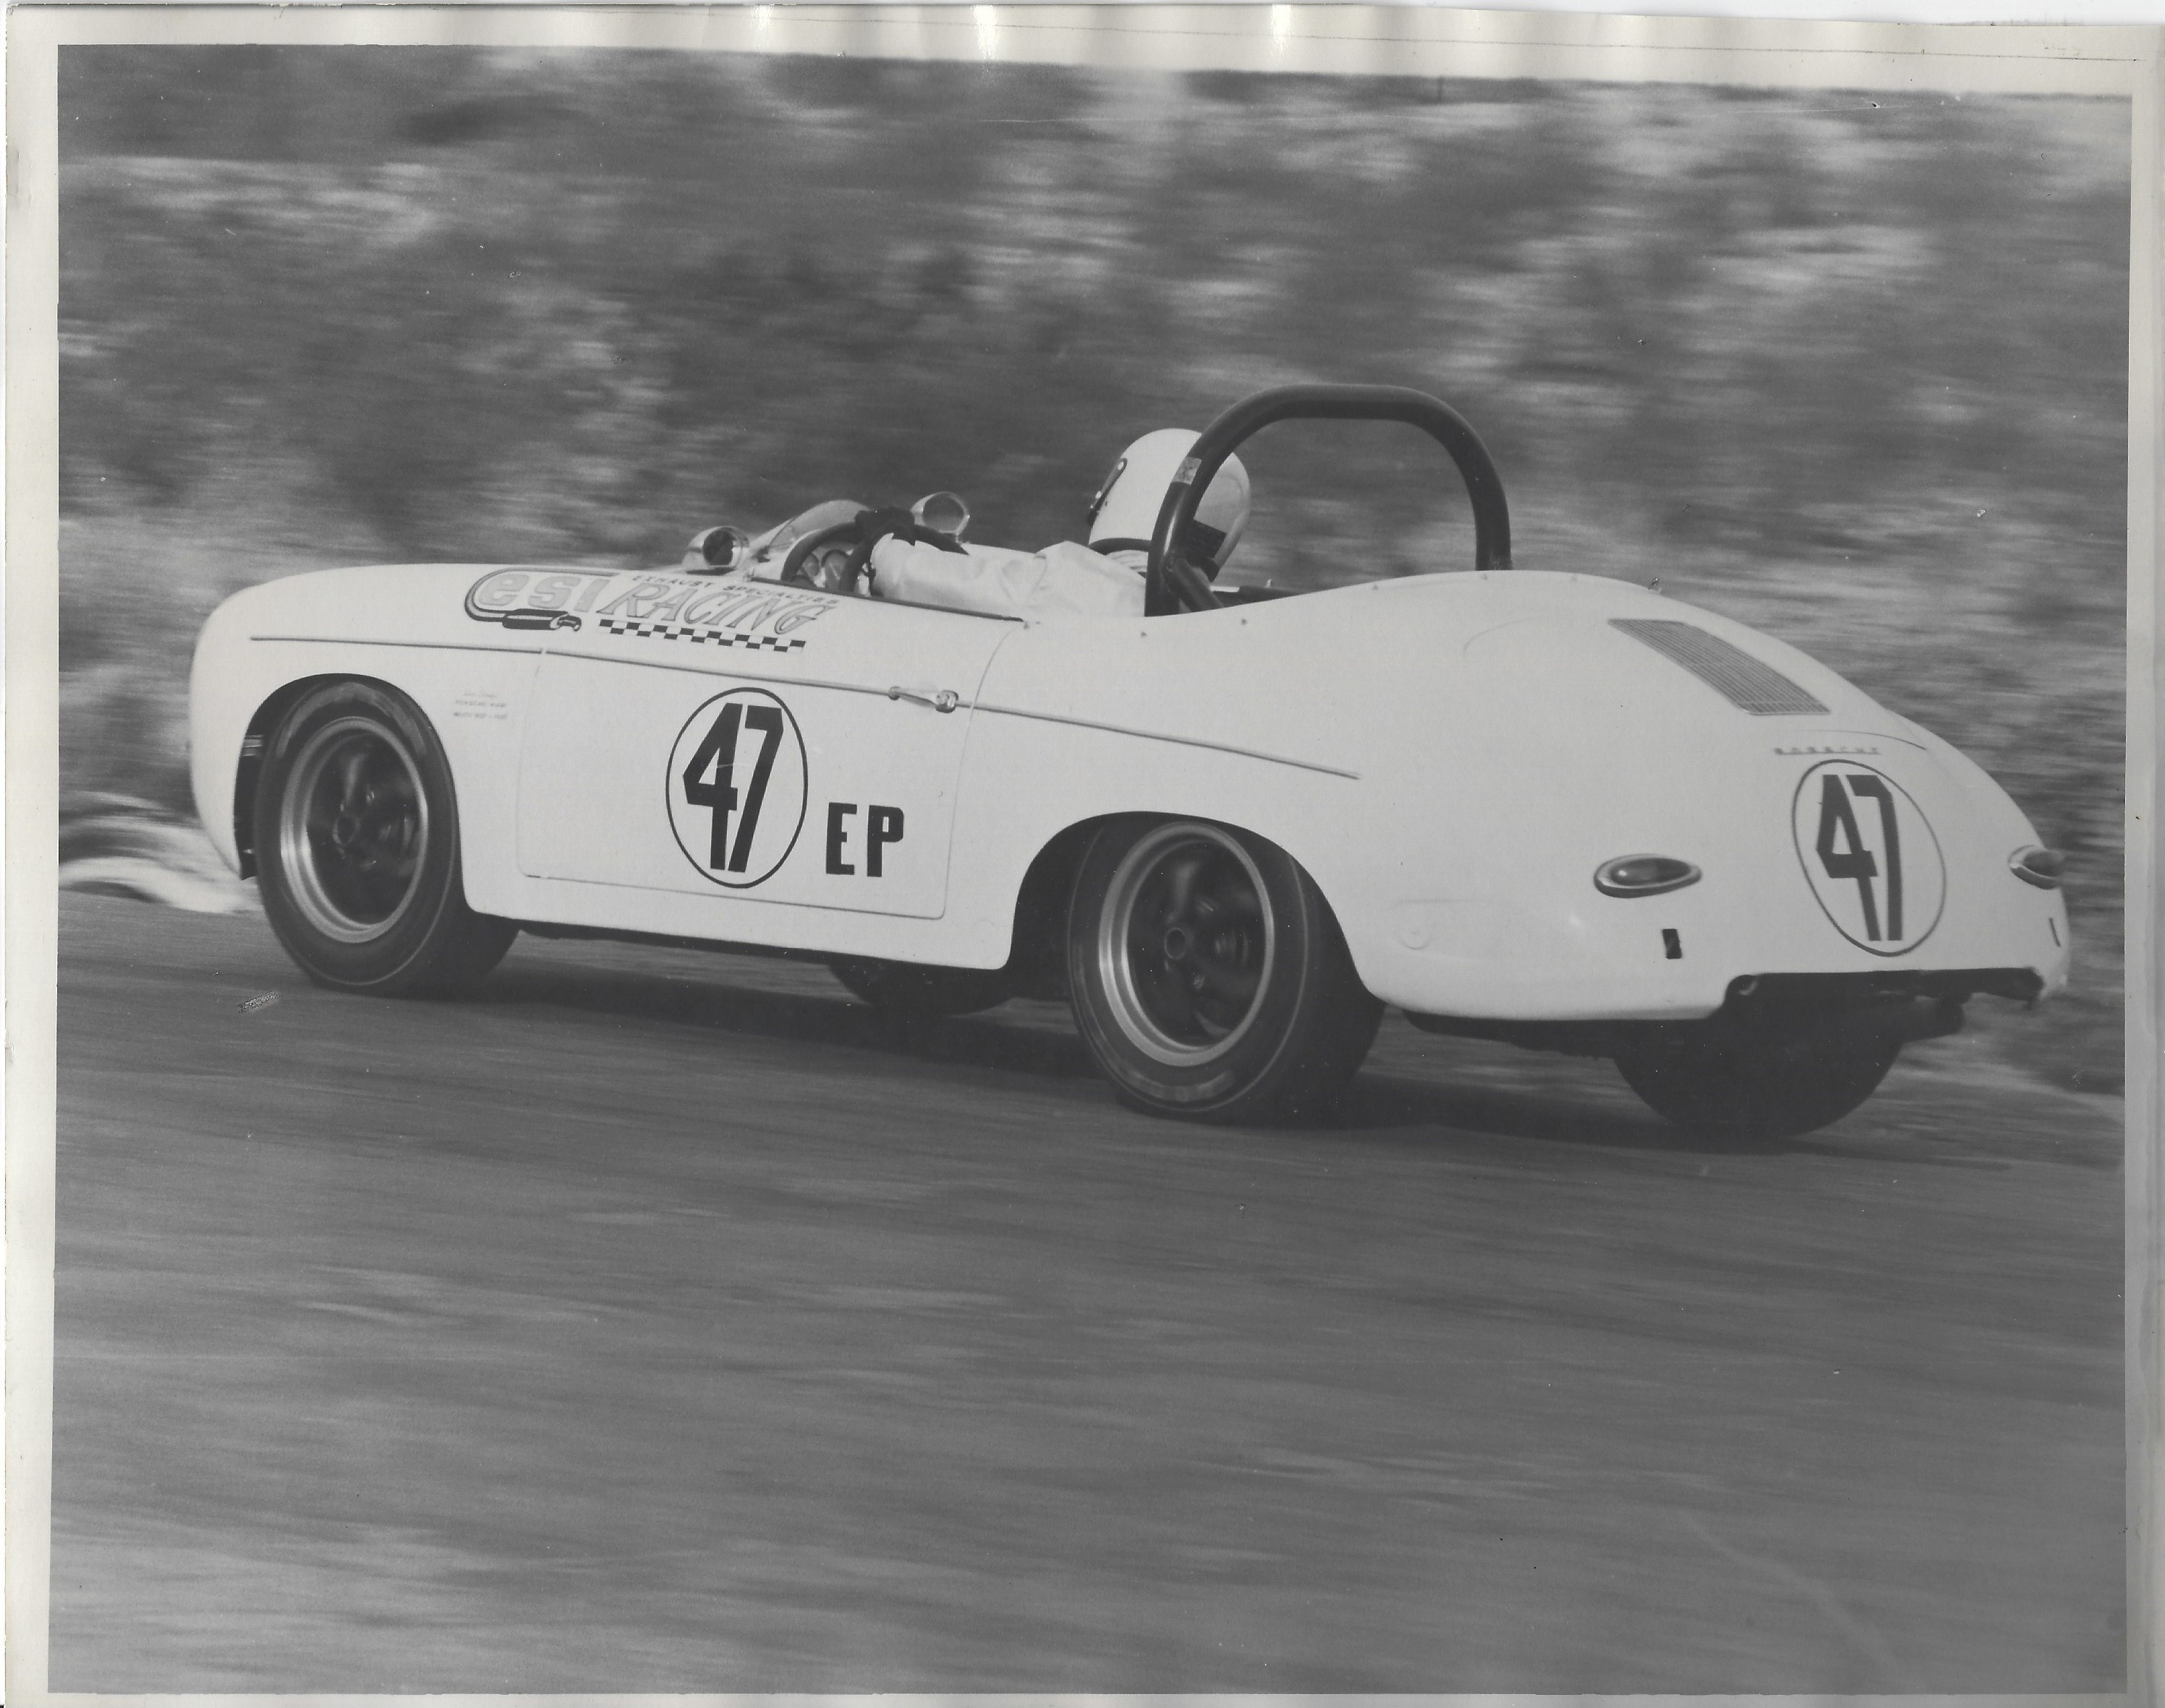 Larry racing a white Speedster in 1966 at the Salt Lake City Autocross competition.